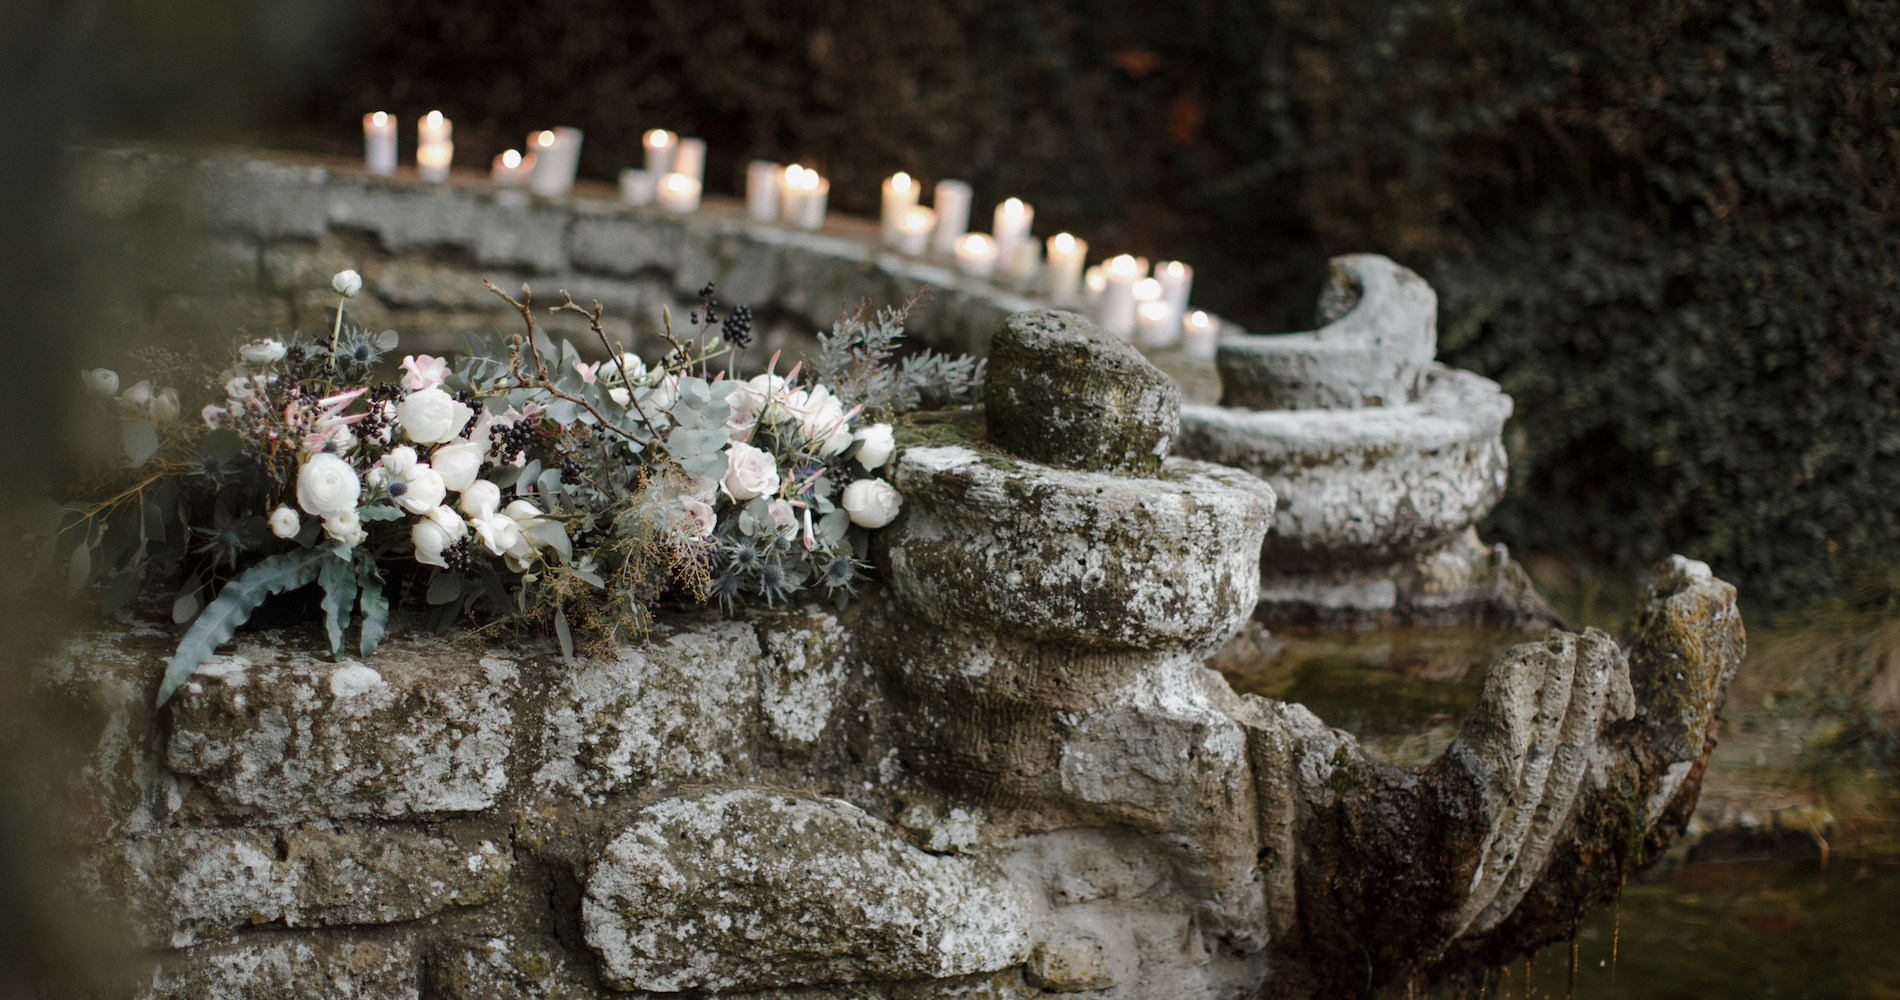 Secret Garden Wedding Inspiration by Monica Leggio and BiancoAntico 14